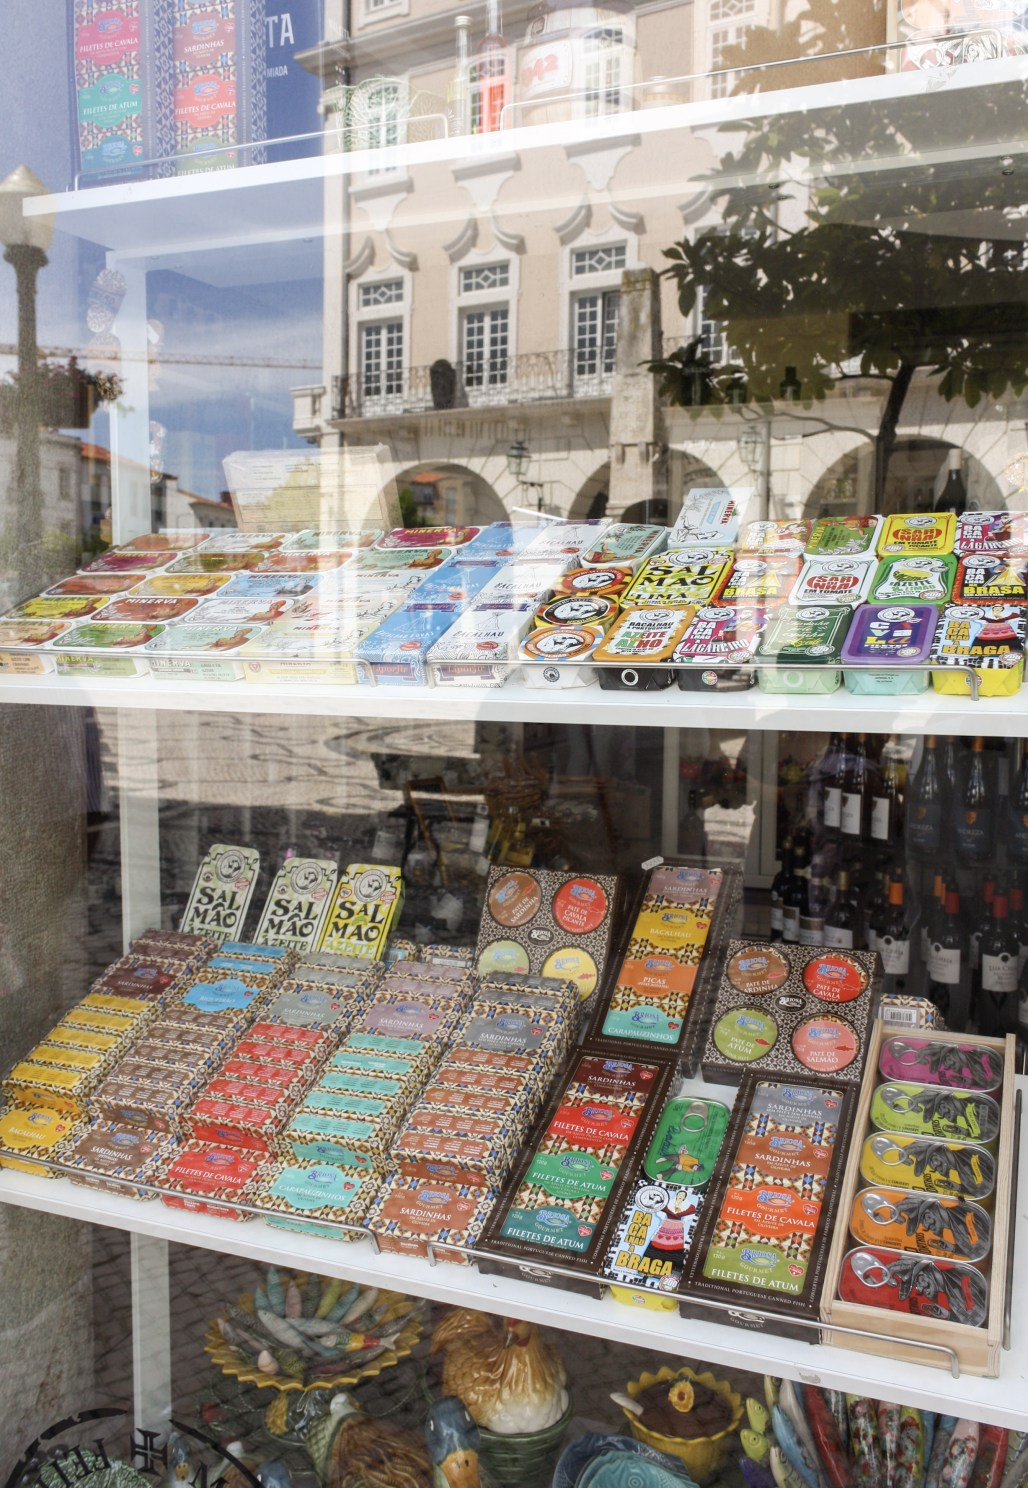 """Traveling to ... Aveiro's Signature Art Nouveau Architecture + Culturally Rich Alleyways 